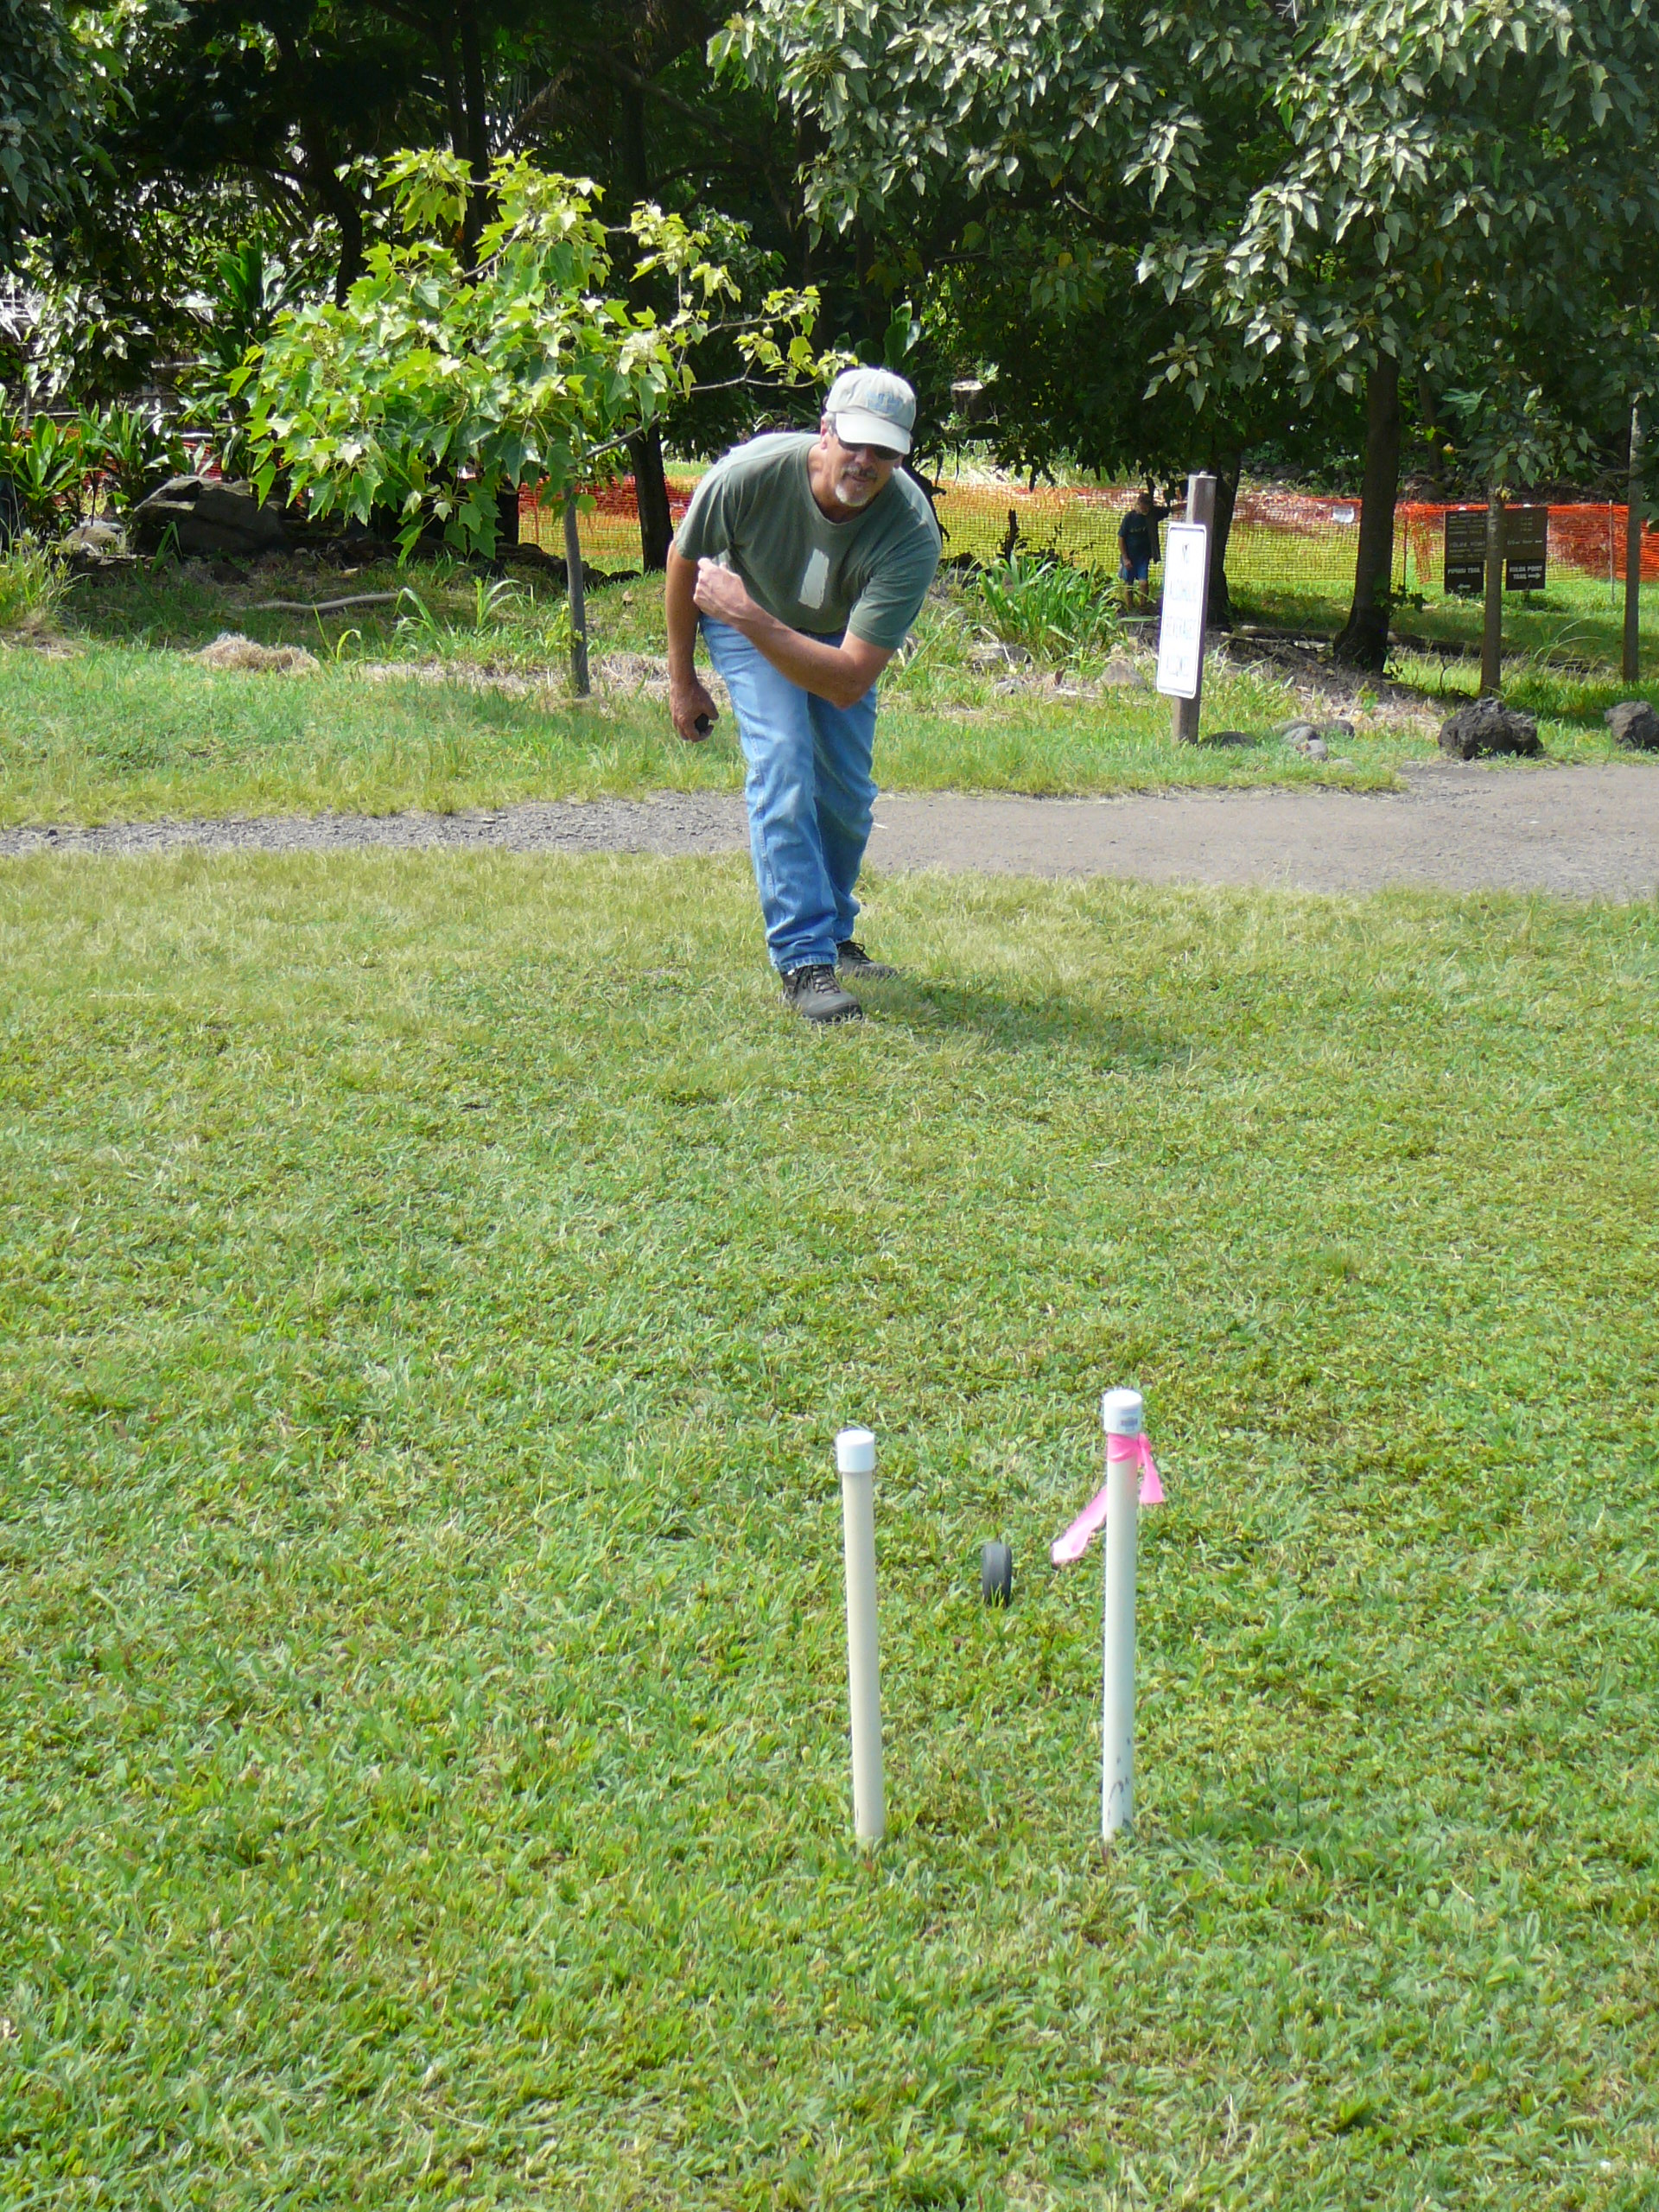 A visitor plays ulumaika (lawn bowling) at Kīpahulu. PC: Haleakalā National Park